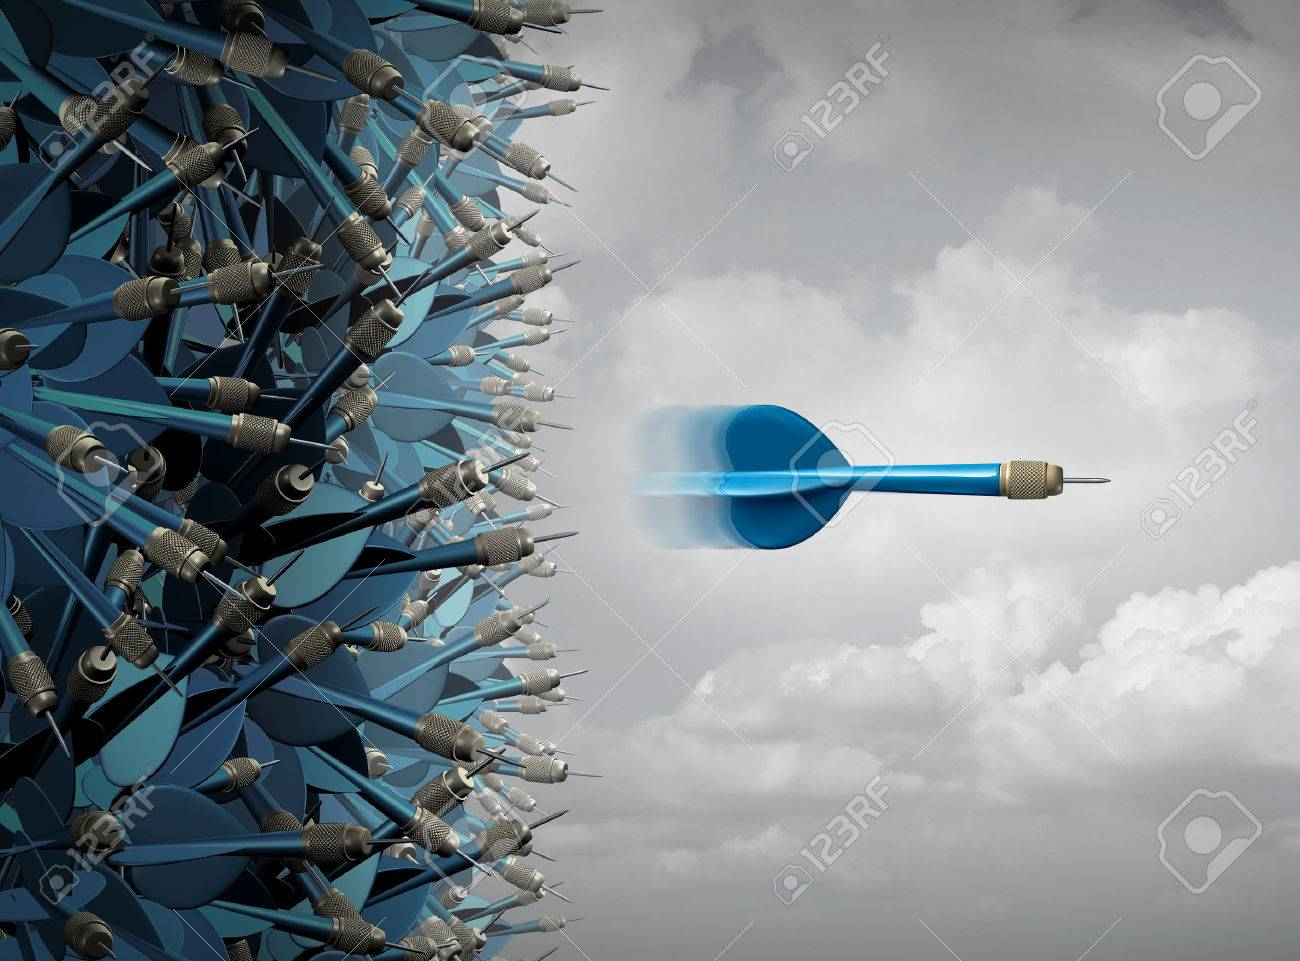 Business success focus as a symbol for successful communication and marketing as a group of mixed up darts and one focused individual emerging in a straight line out away from the pack as a leadership and performance metaphor. - 51757411